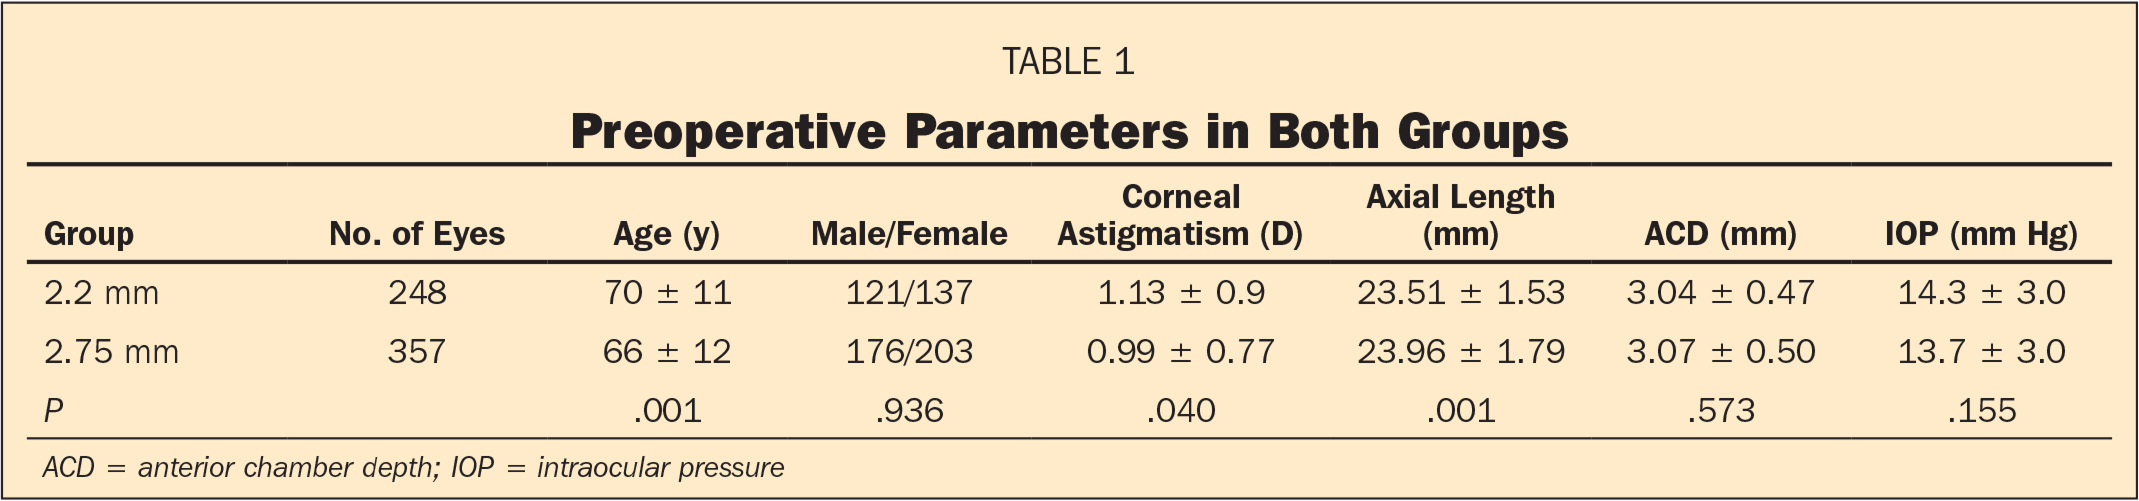 Preoperative Parameters in Both Groups